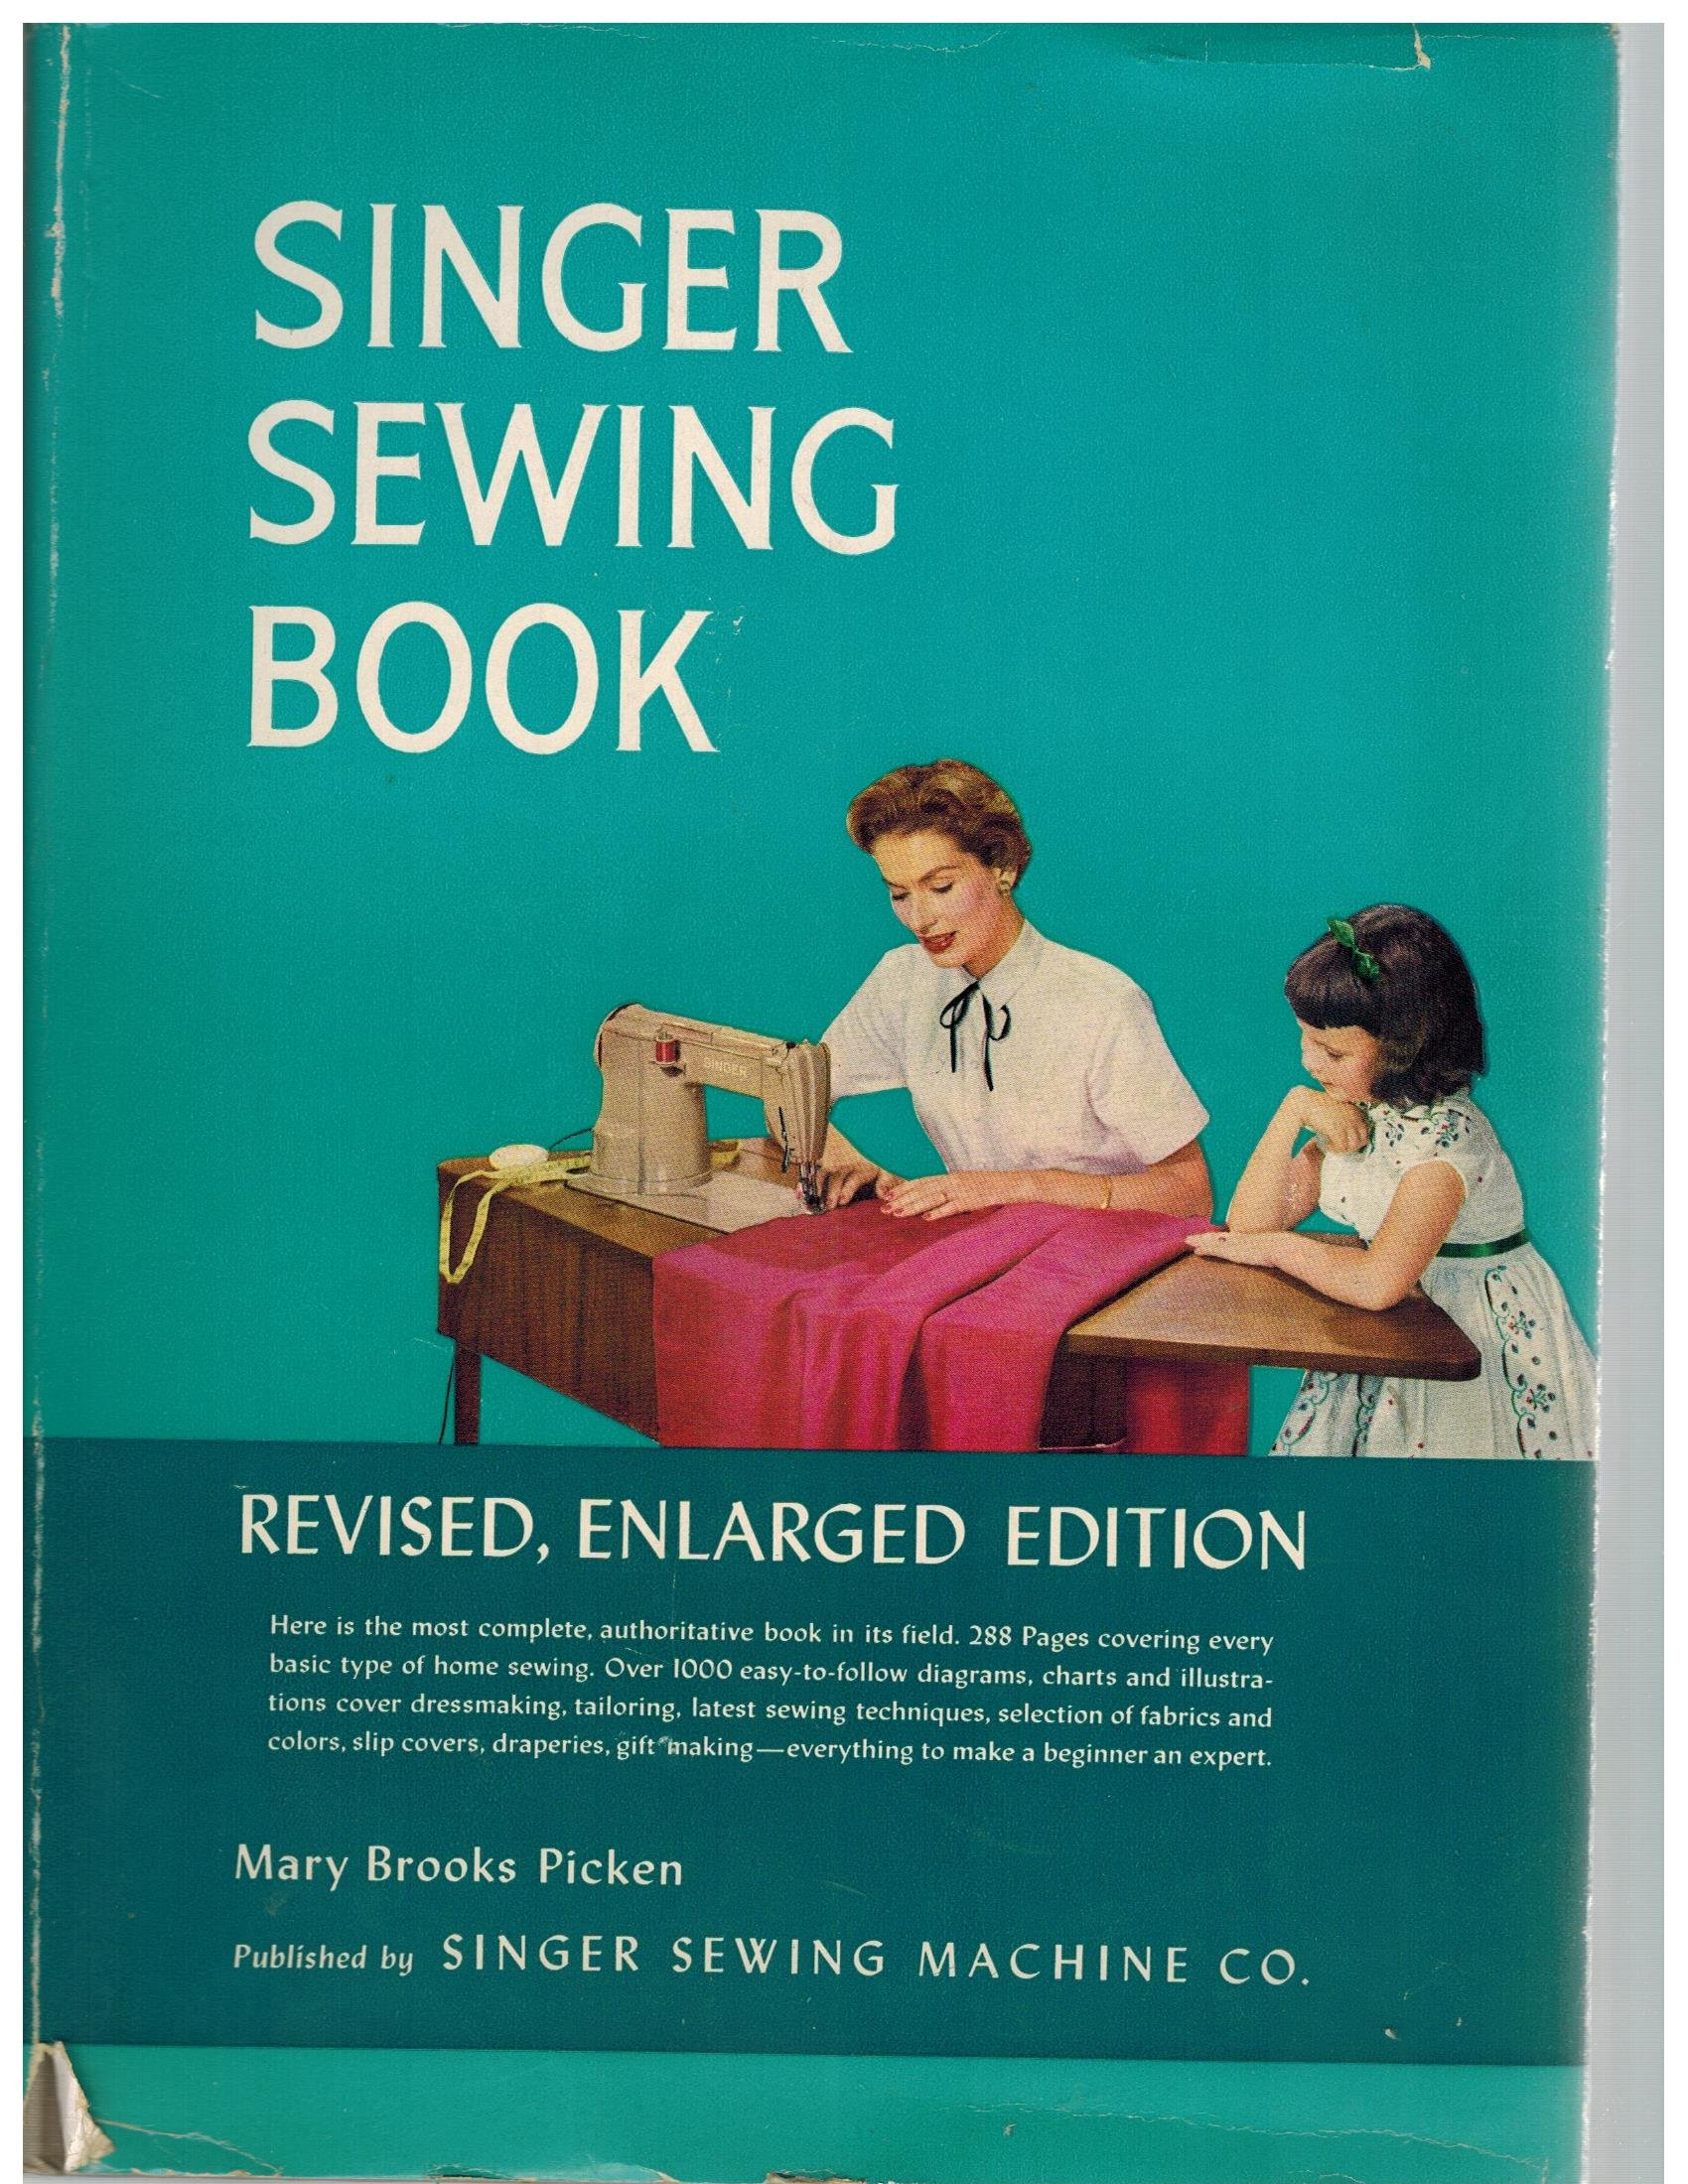 Mary Brooks Picken - Singer Sewing Book